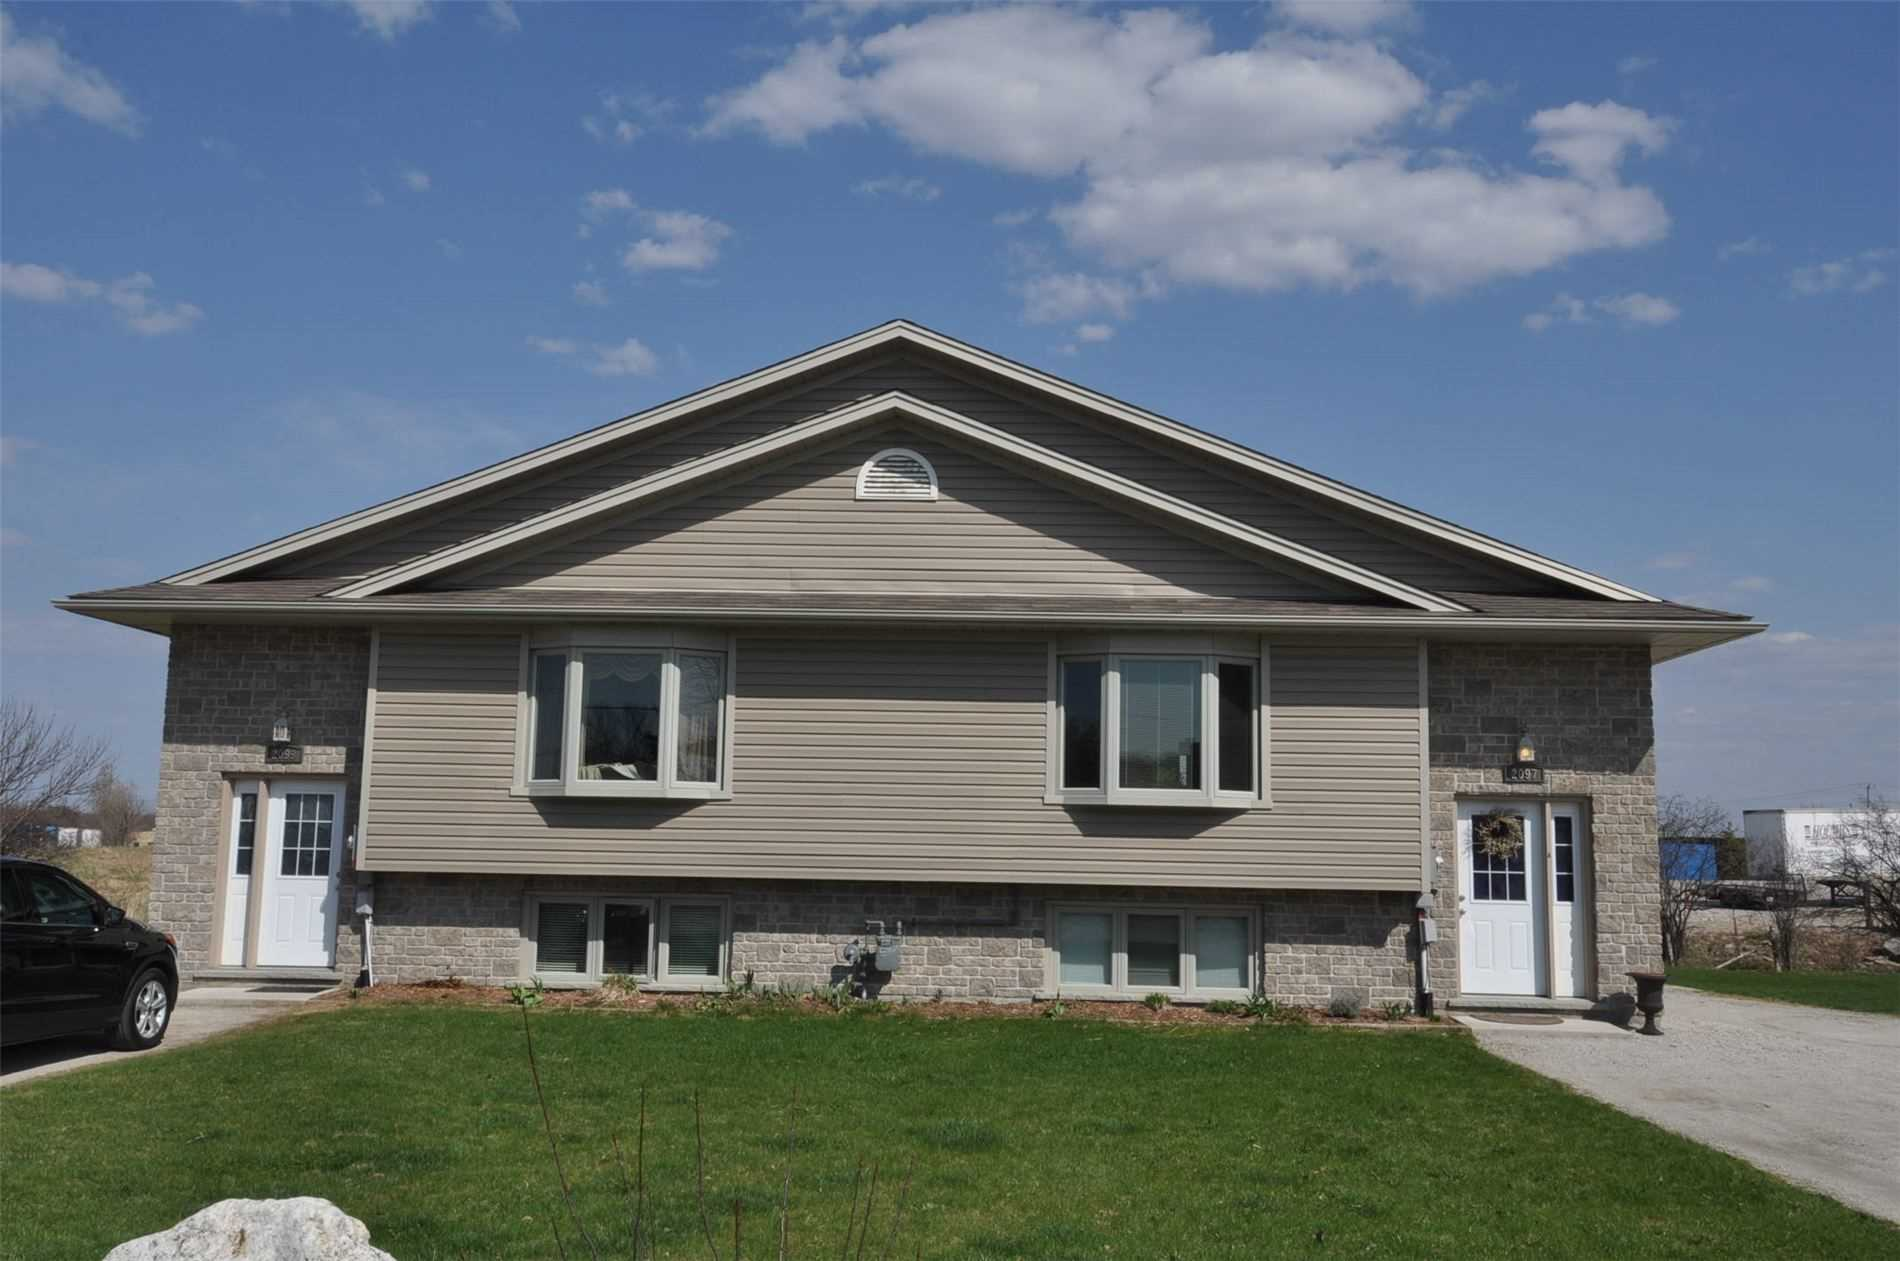 pictures of house for sale MLS: X4665126 located at 2097* 9th Ave E, Owen Sound N4K3H1